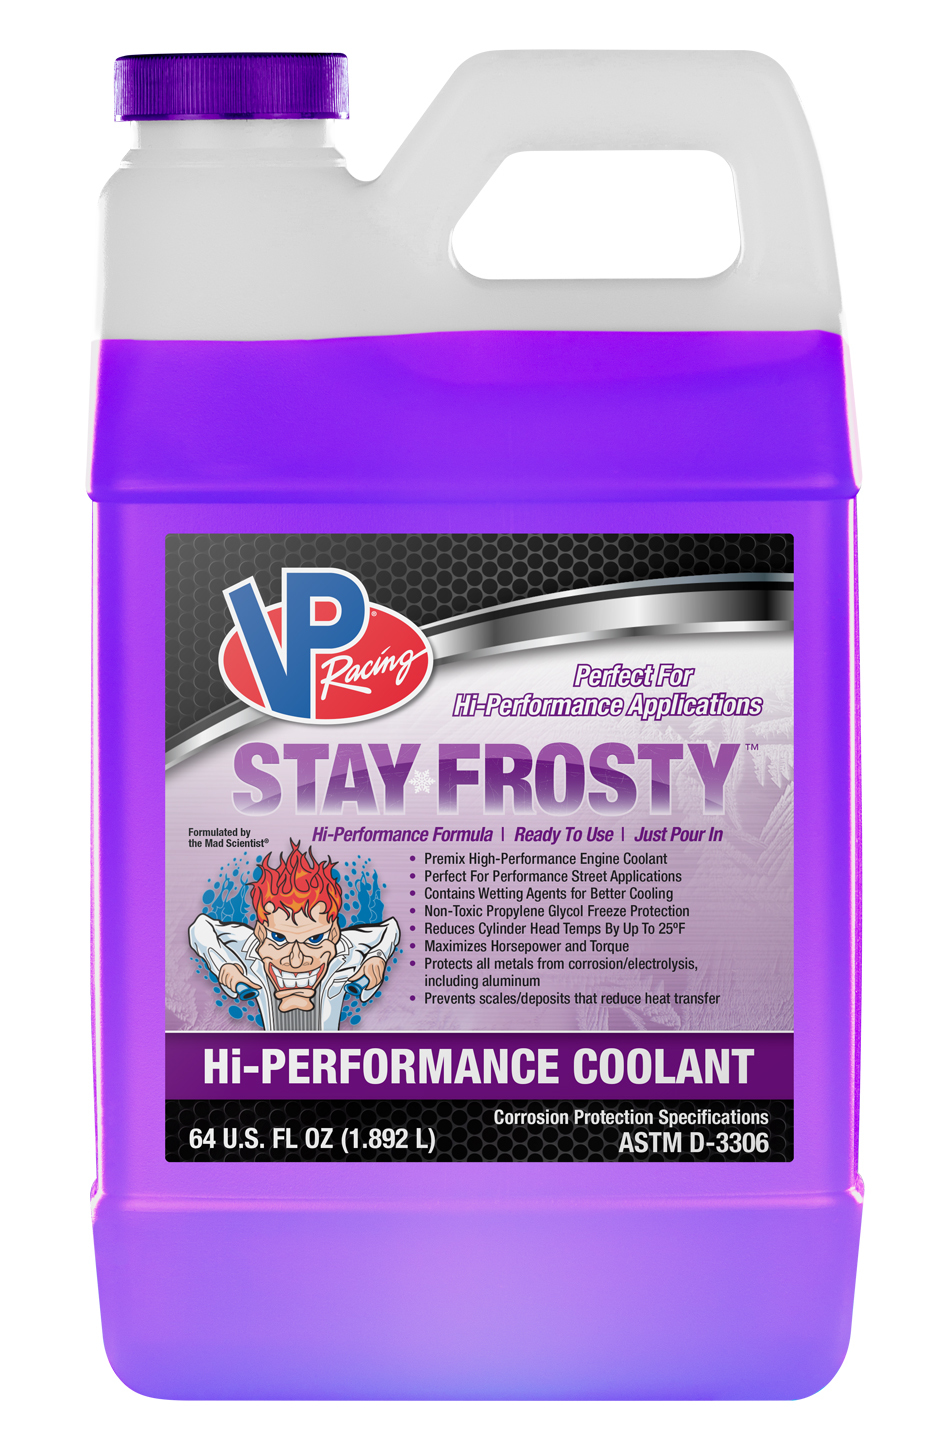 Vp Fuel Containers Coolant Hi-Perf Stay Frosty 64oz